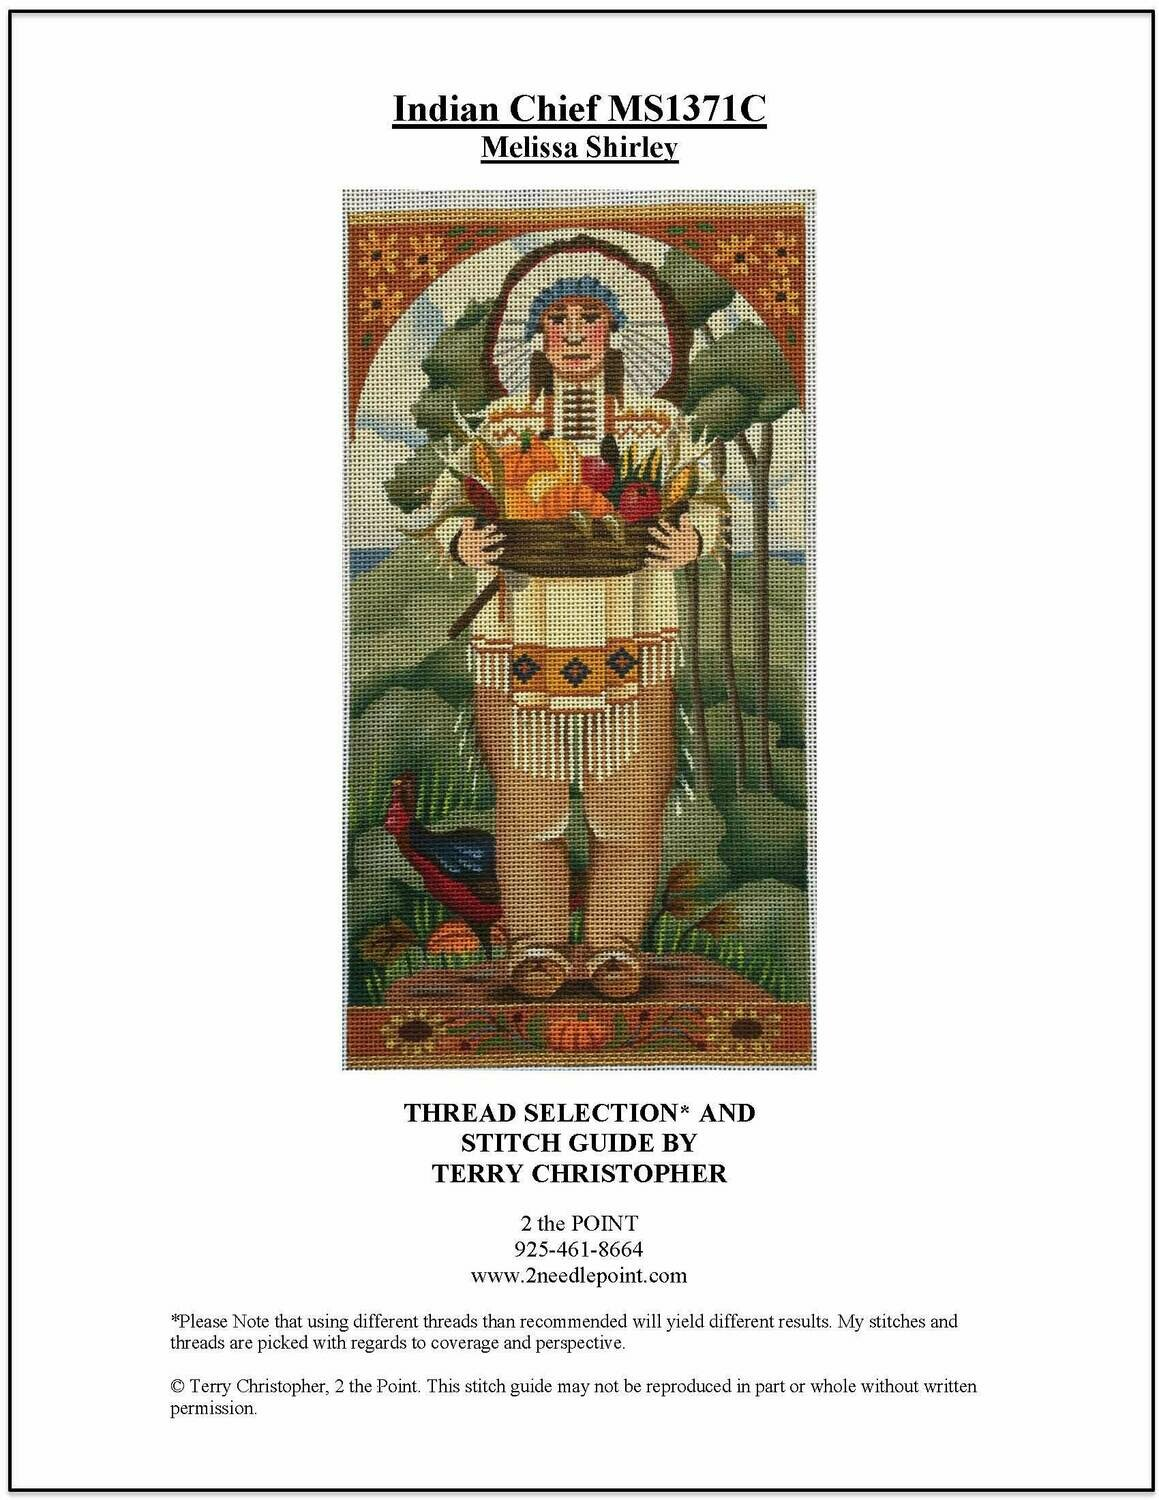 Melissa Shirley, Indian Chief MS1371C